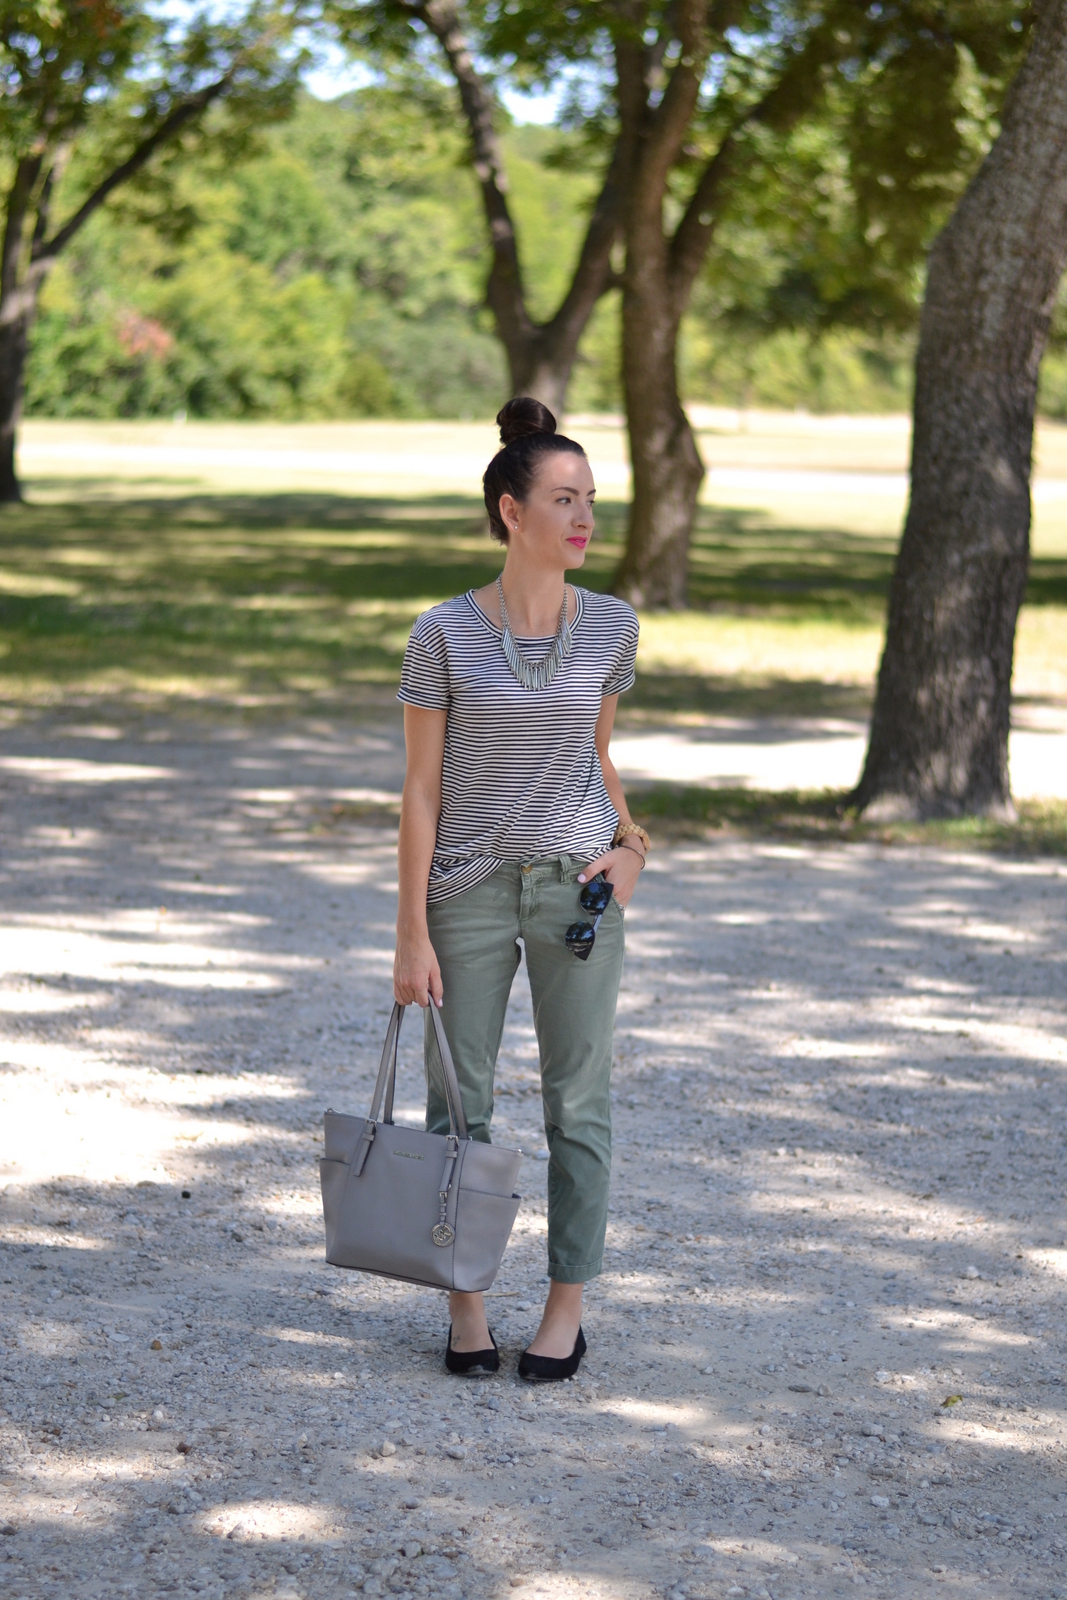 Casual Summer Look with Striped Tee and Top Knot